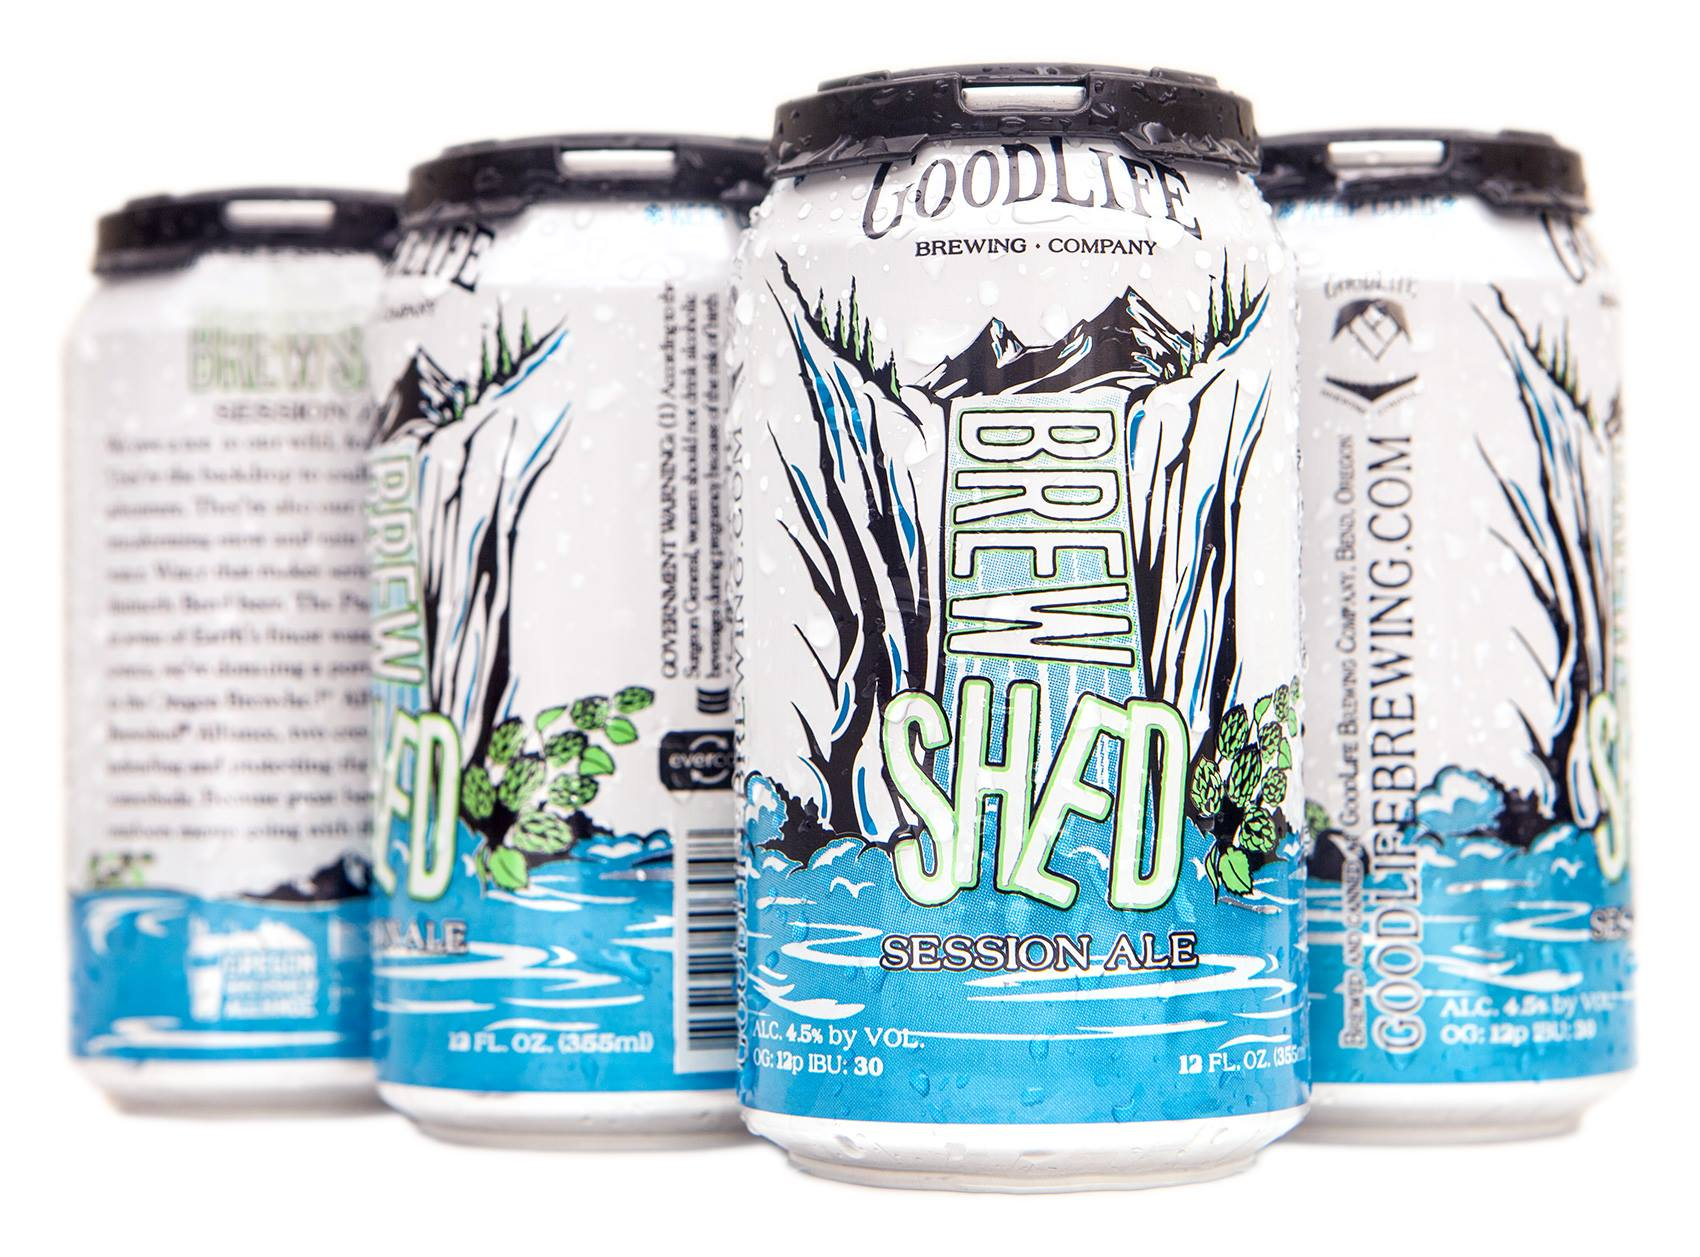 Brewshed® Session Ale (courtesy of GoodLife Brewing)